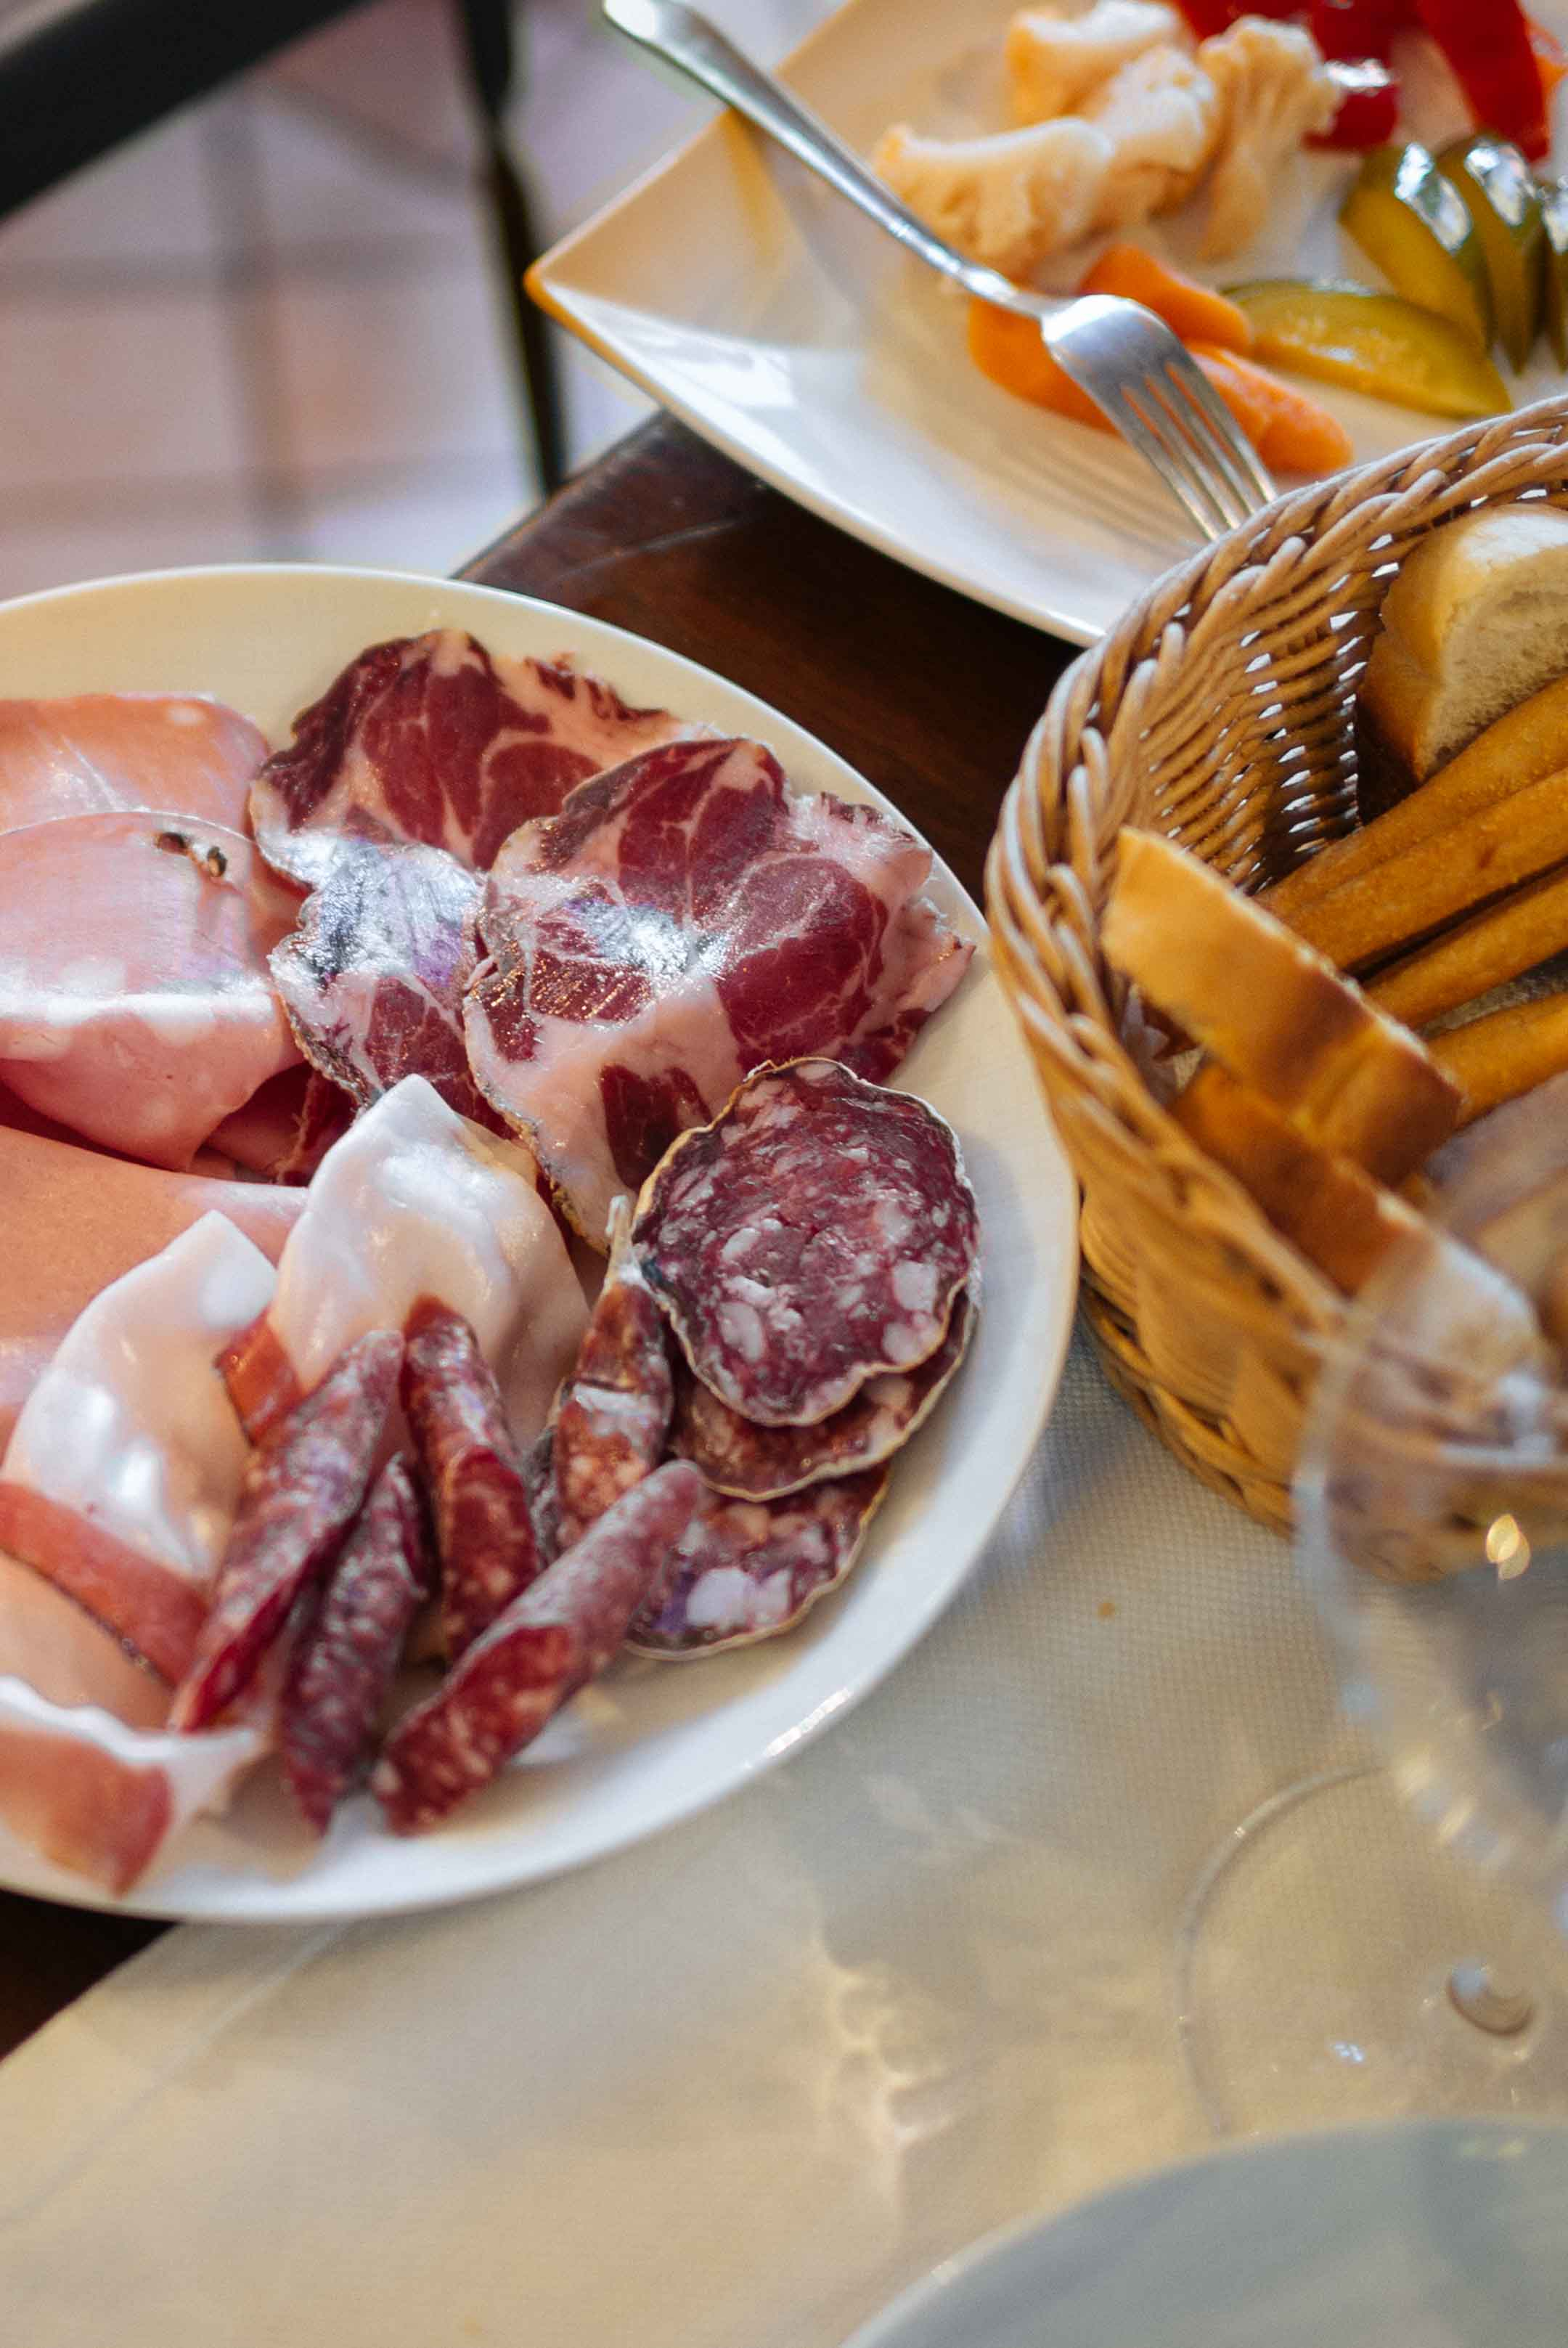 Go to Vinoteca Centro Storico in Serralunga for good food and amazing local wines and champagnes